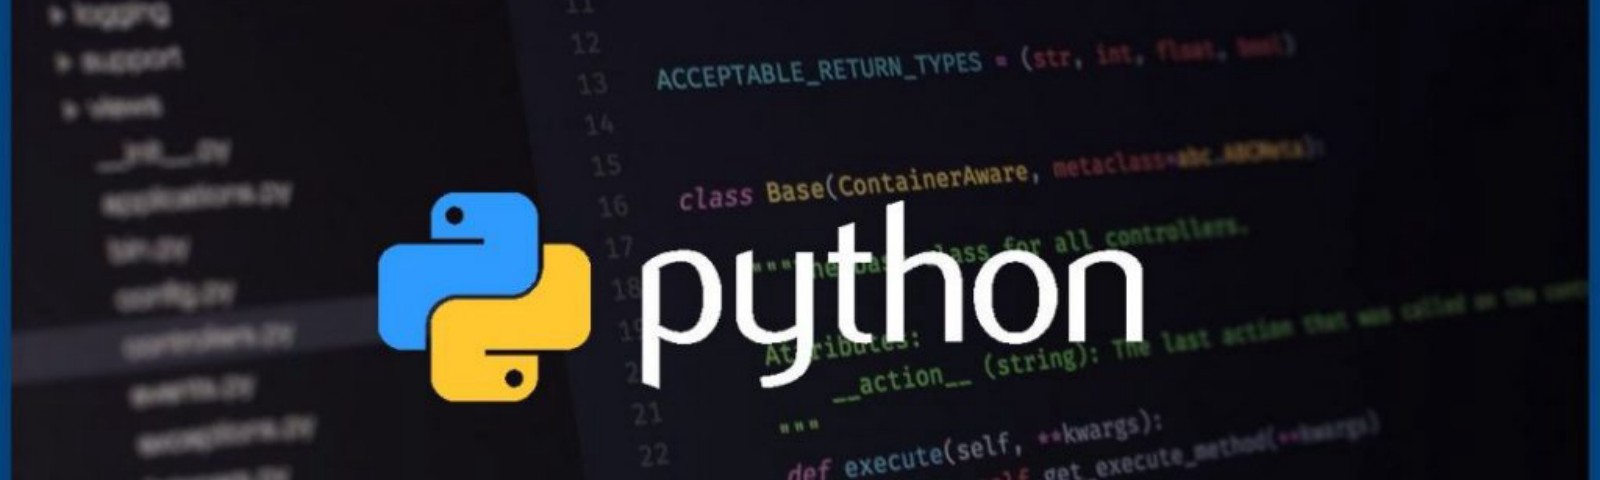 PDF Processing with Python - Towards Data Science